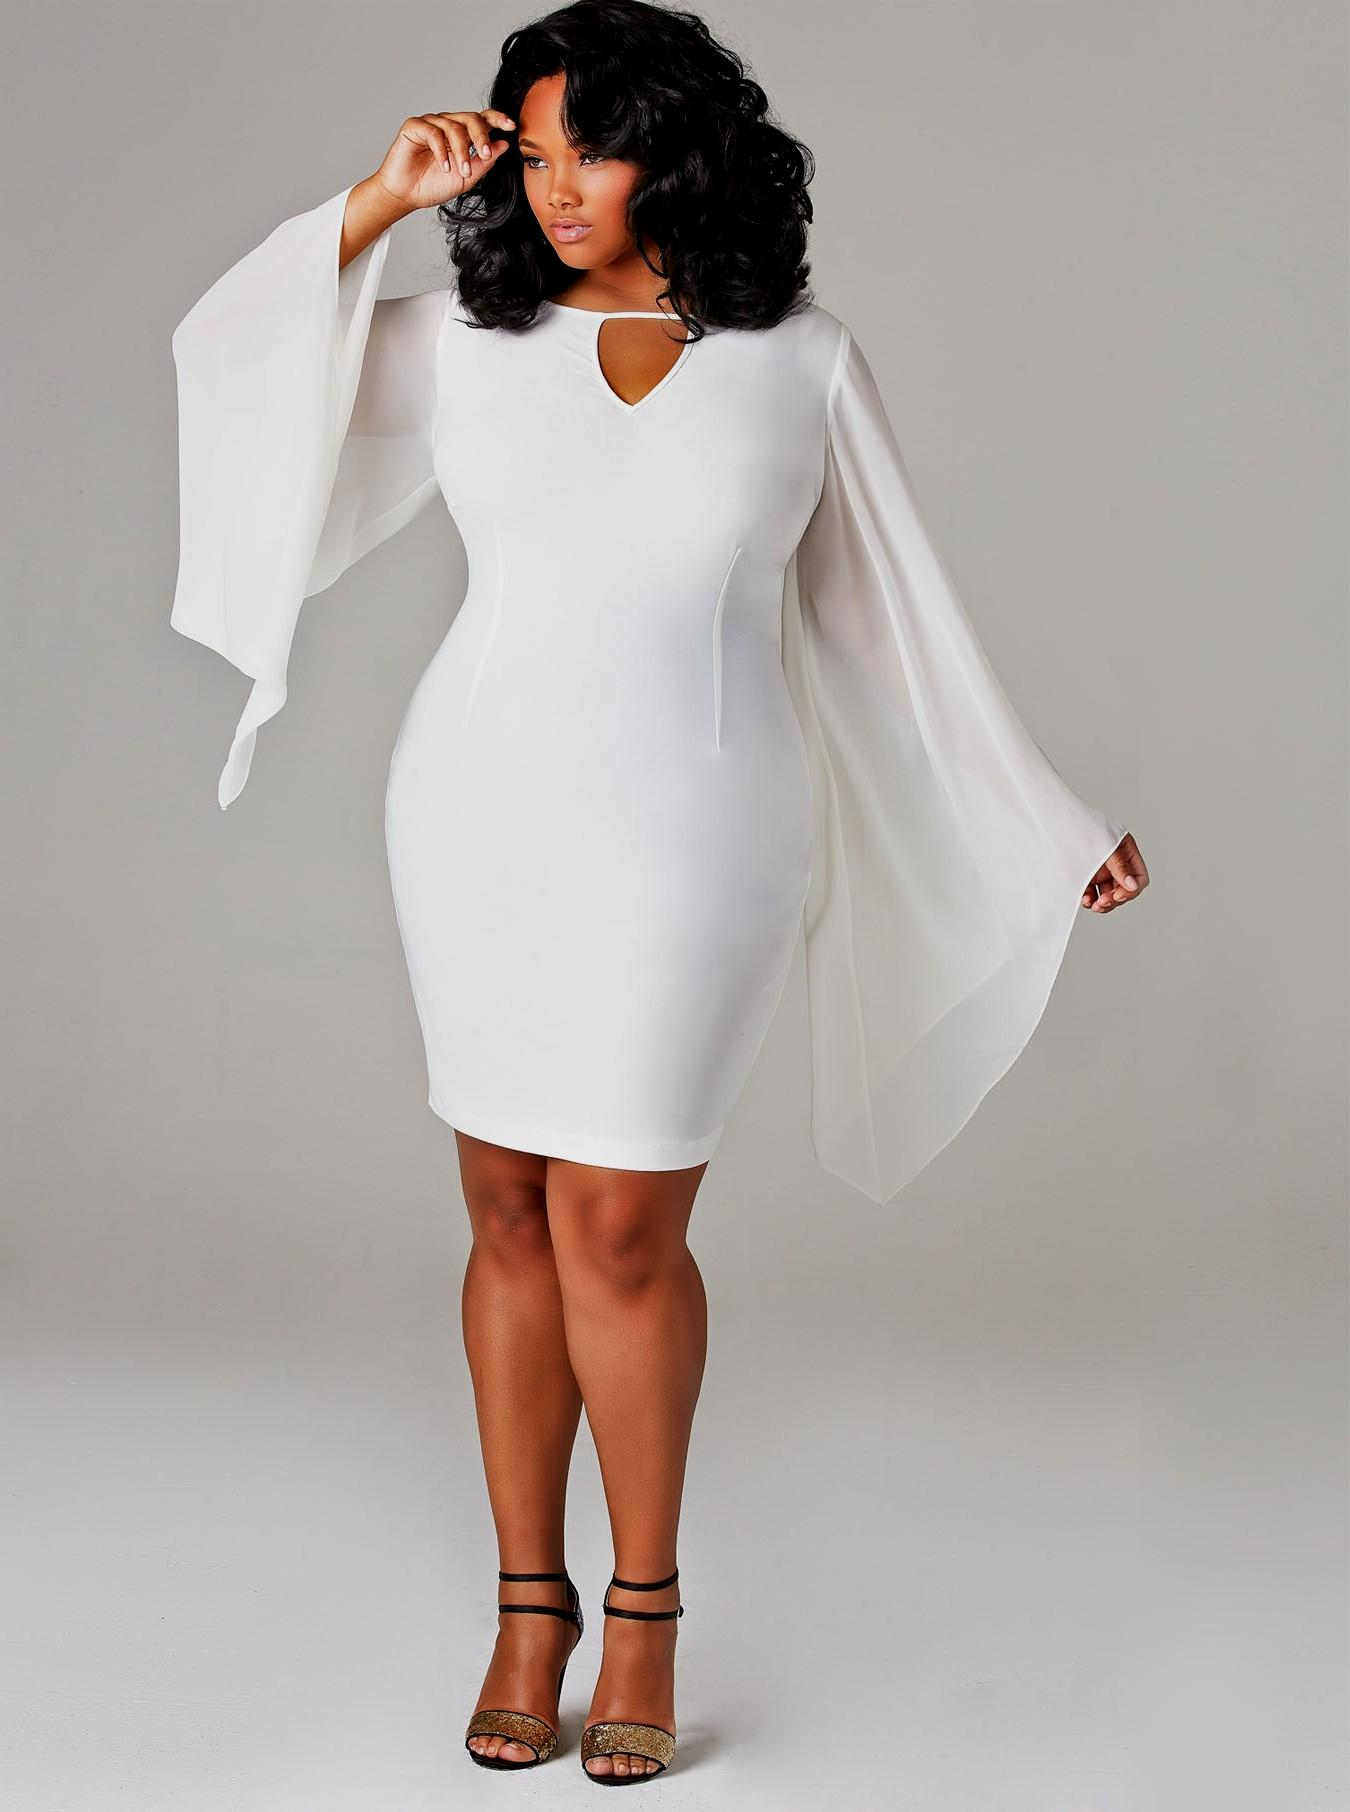 Our Choice of Top All White Plus Size Dresses For All White Party ...